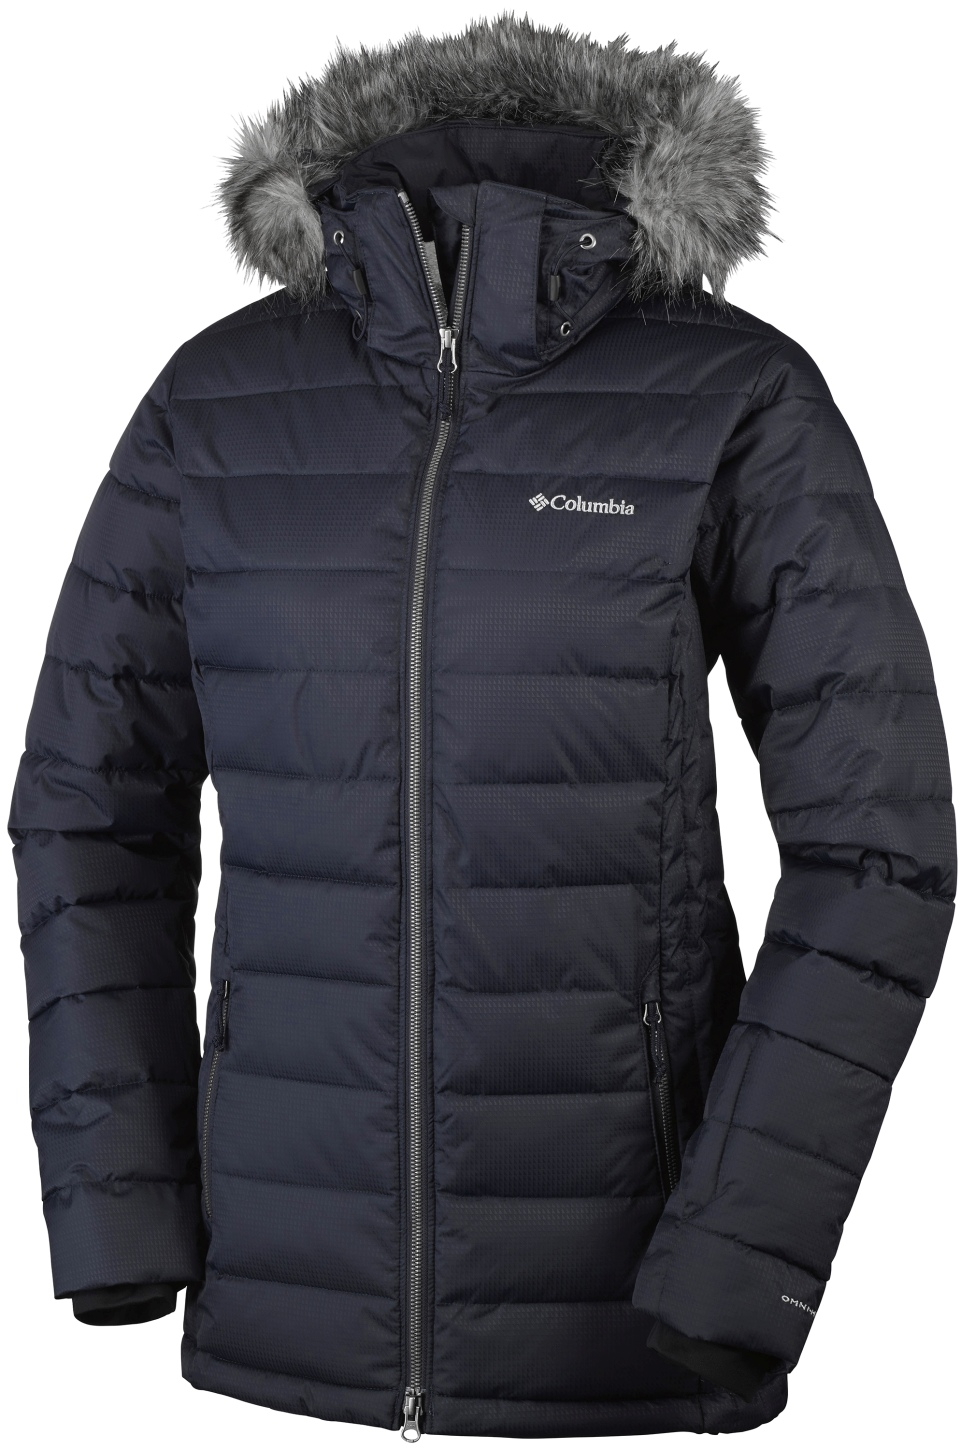 Columbia Women's Ponderay Ski Jacket Abyss-30